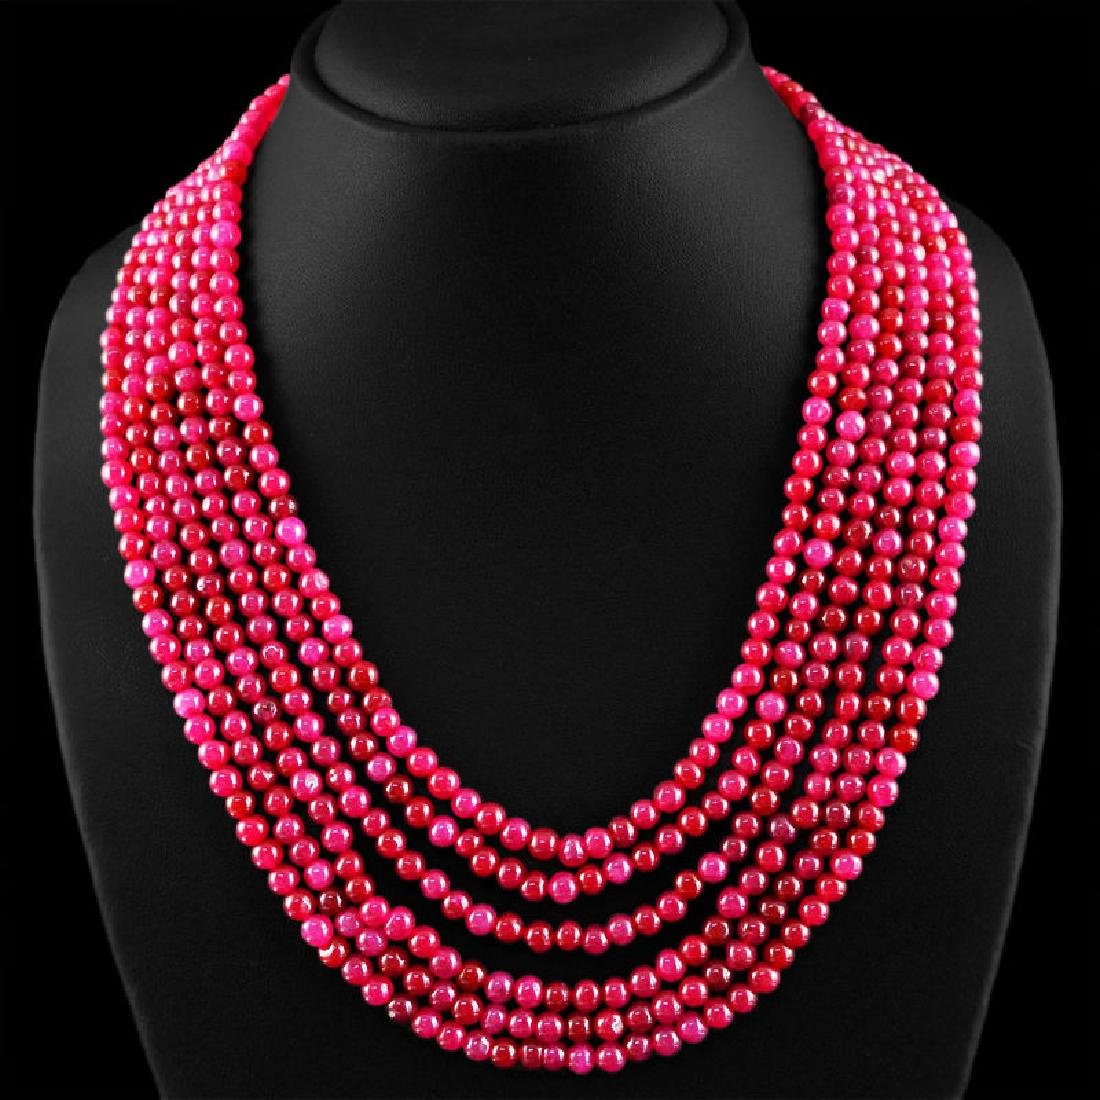 EARTH MINED 6 STRAND EXCLUSIVE RICH RED RUBY ROUND BEA